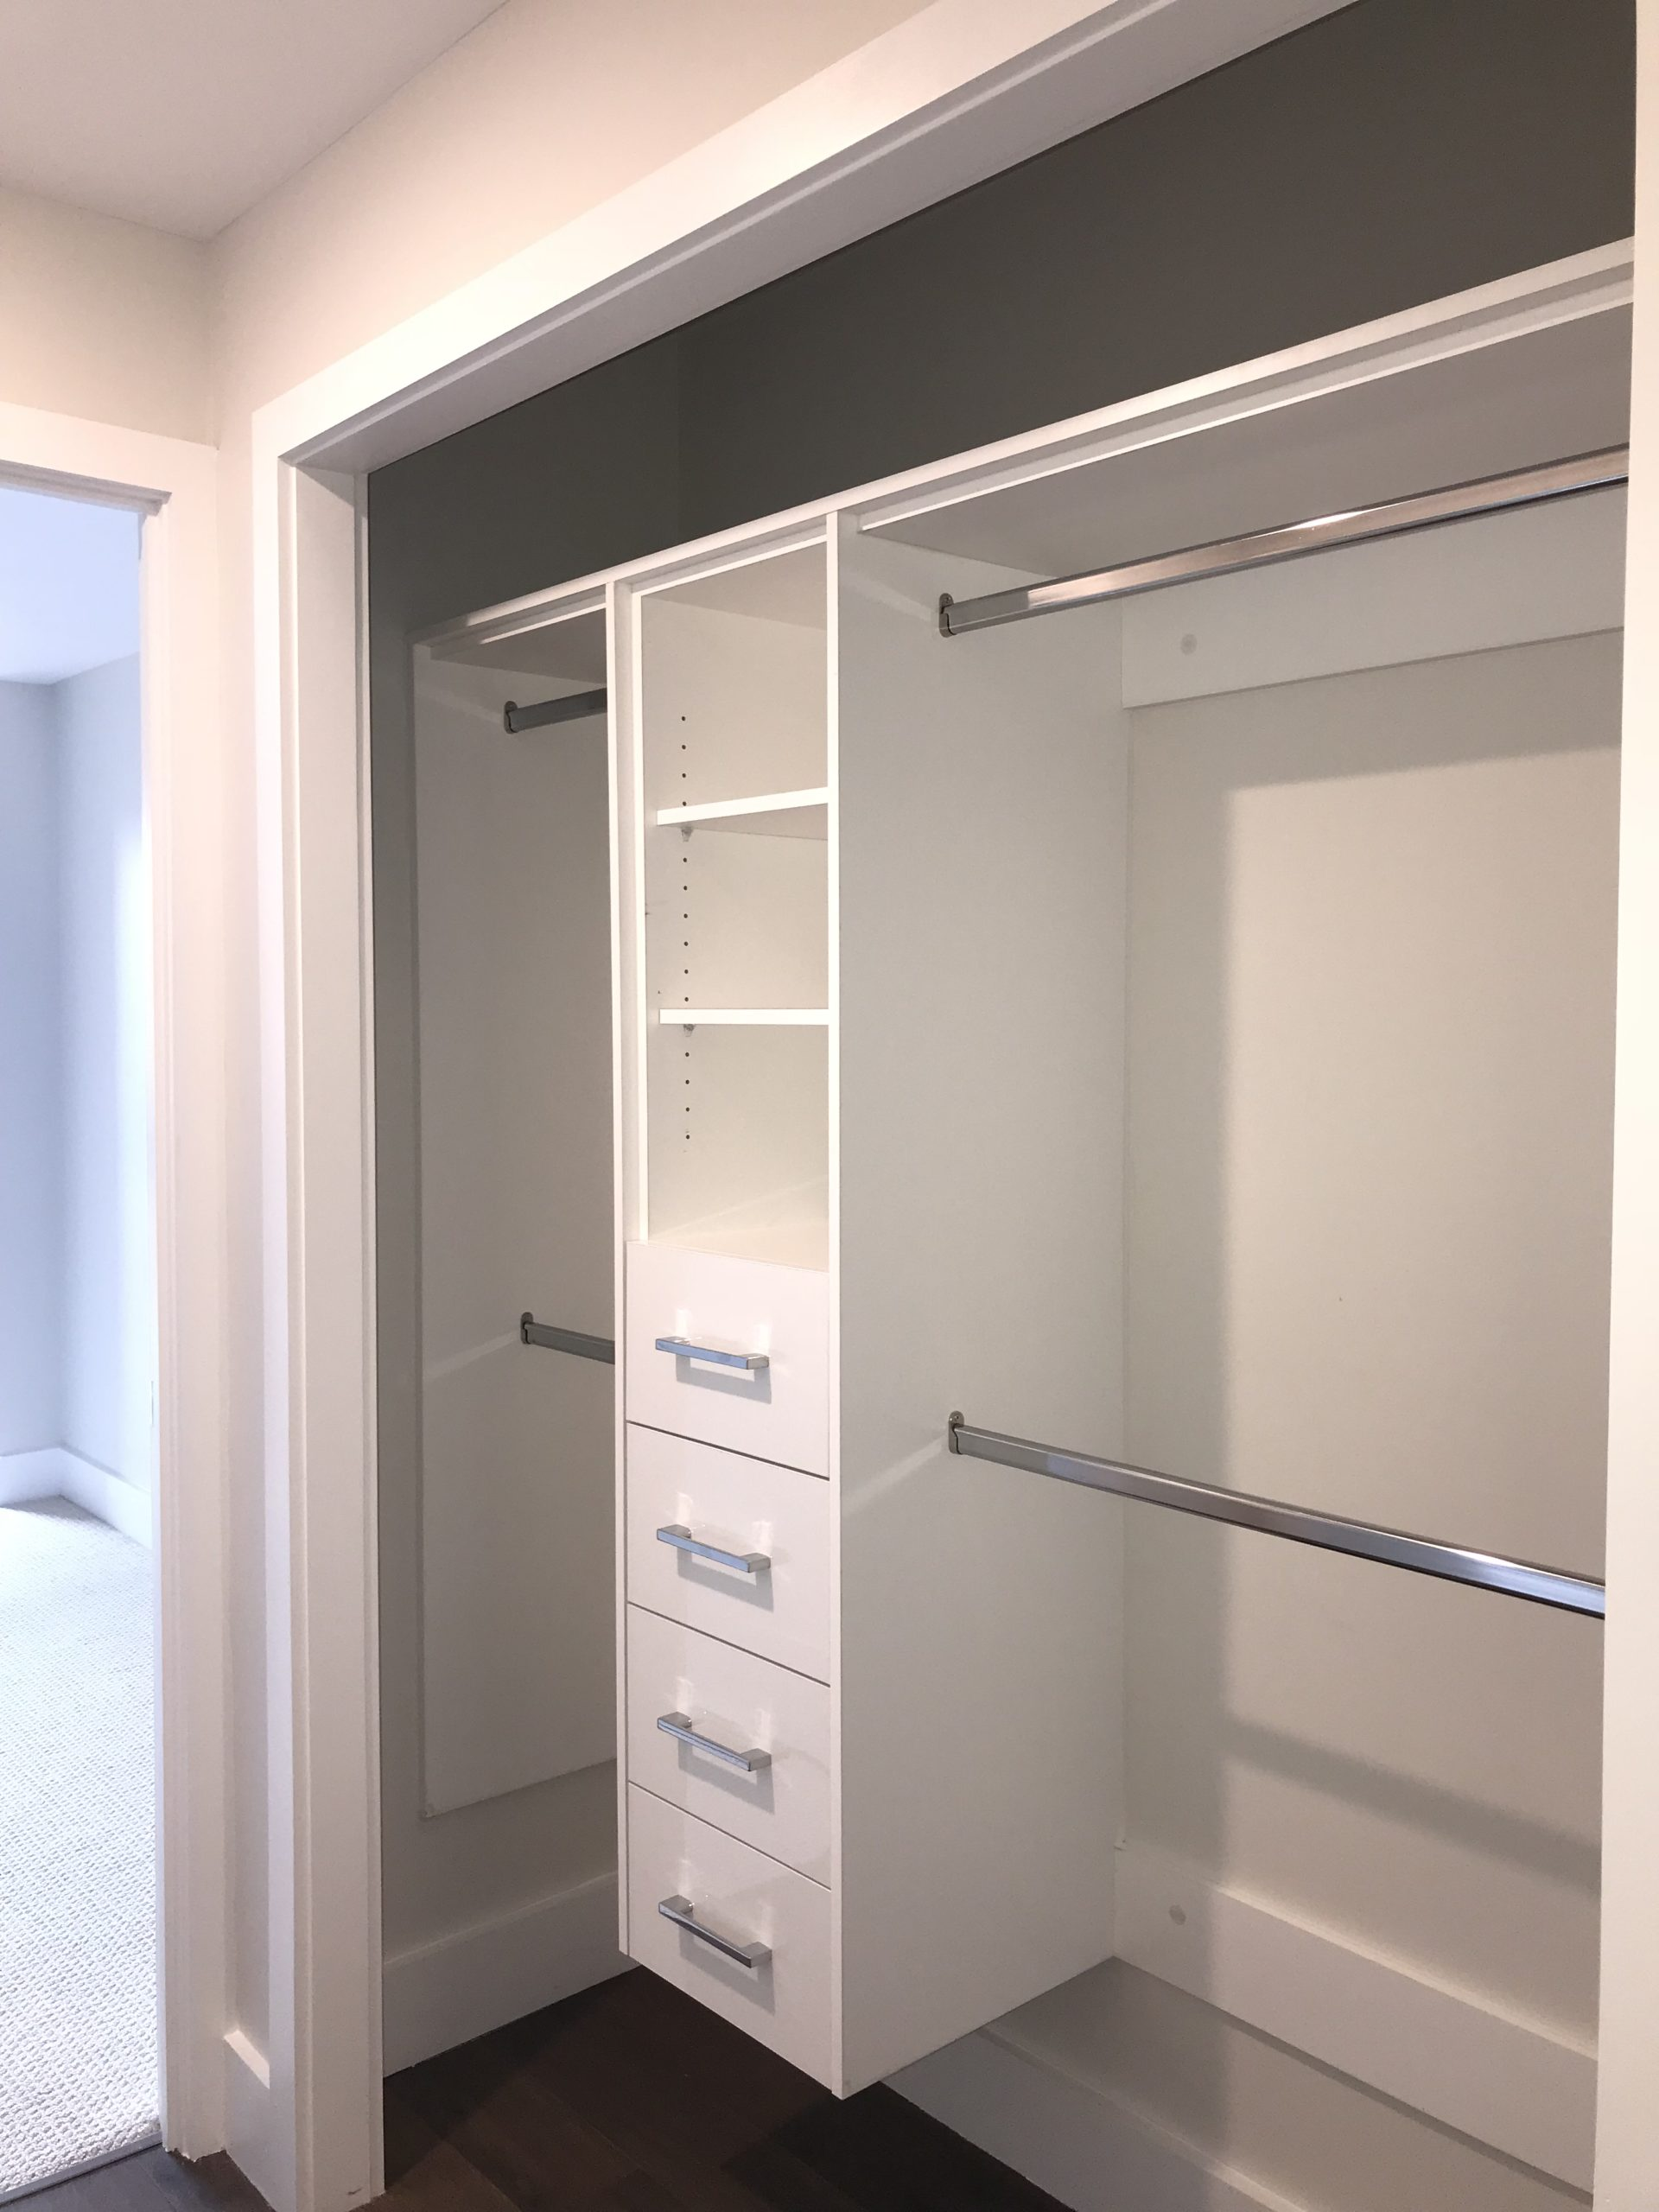 Central Cabinet Unit and Side Build In Coat Racks